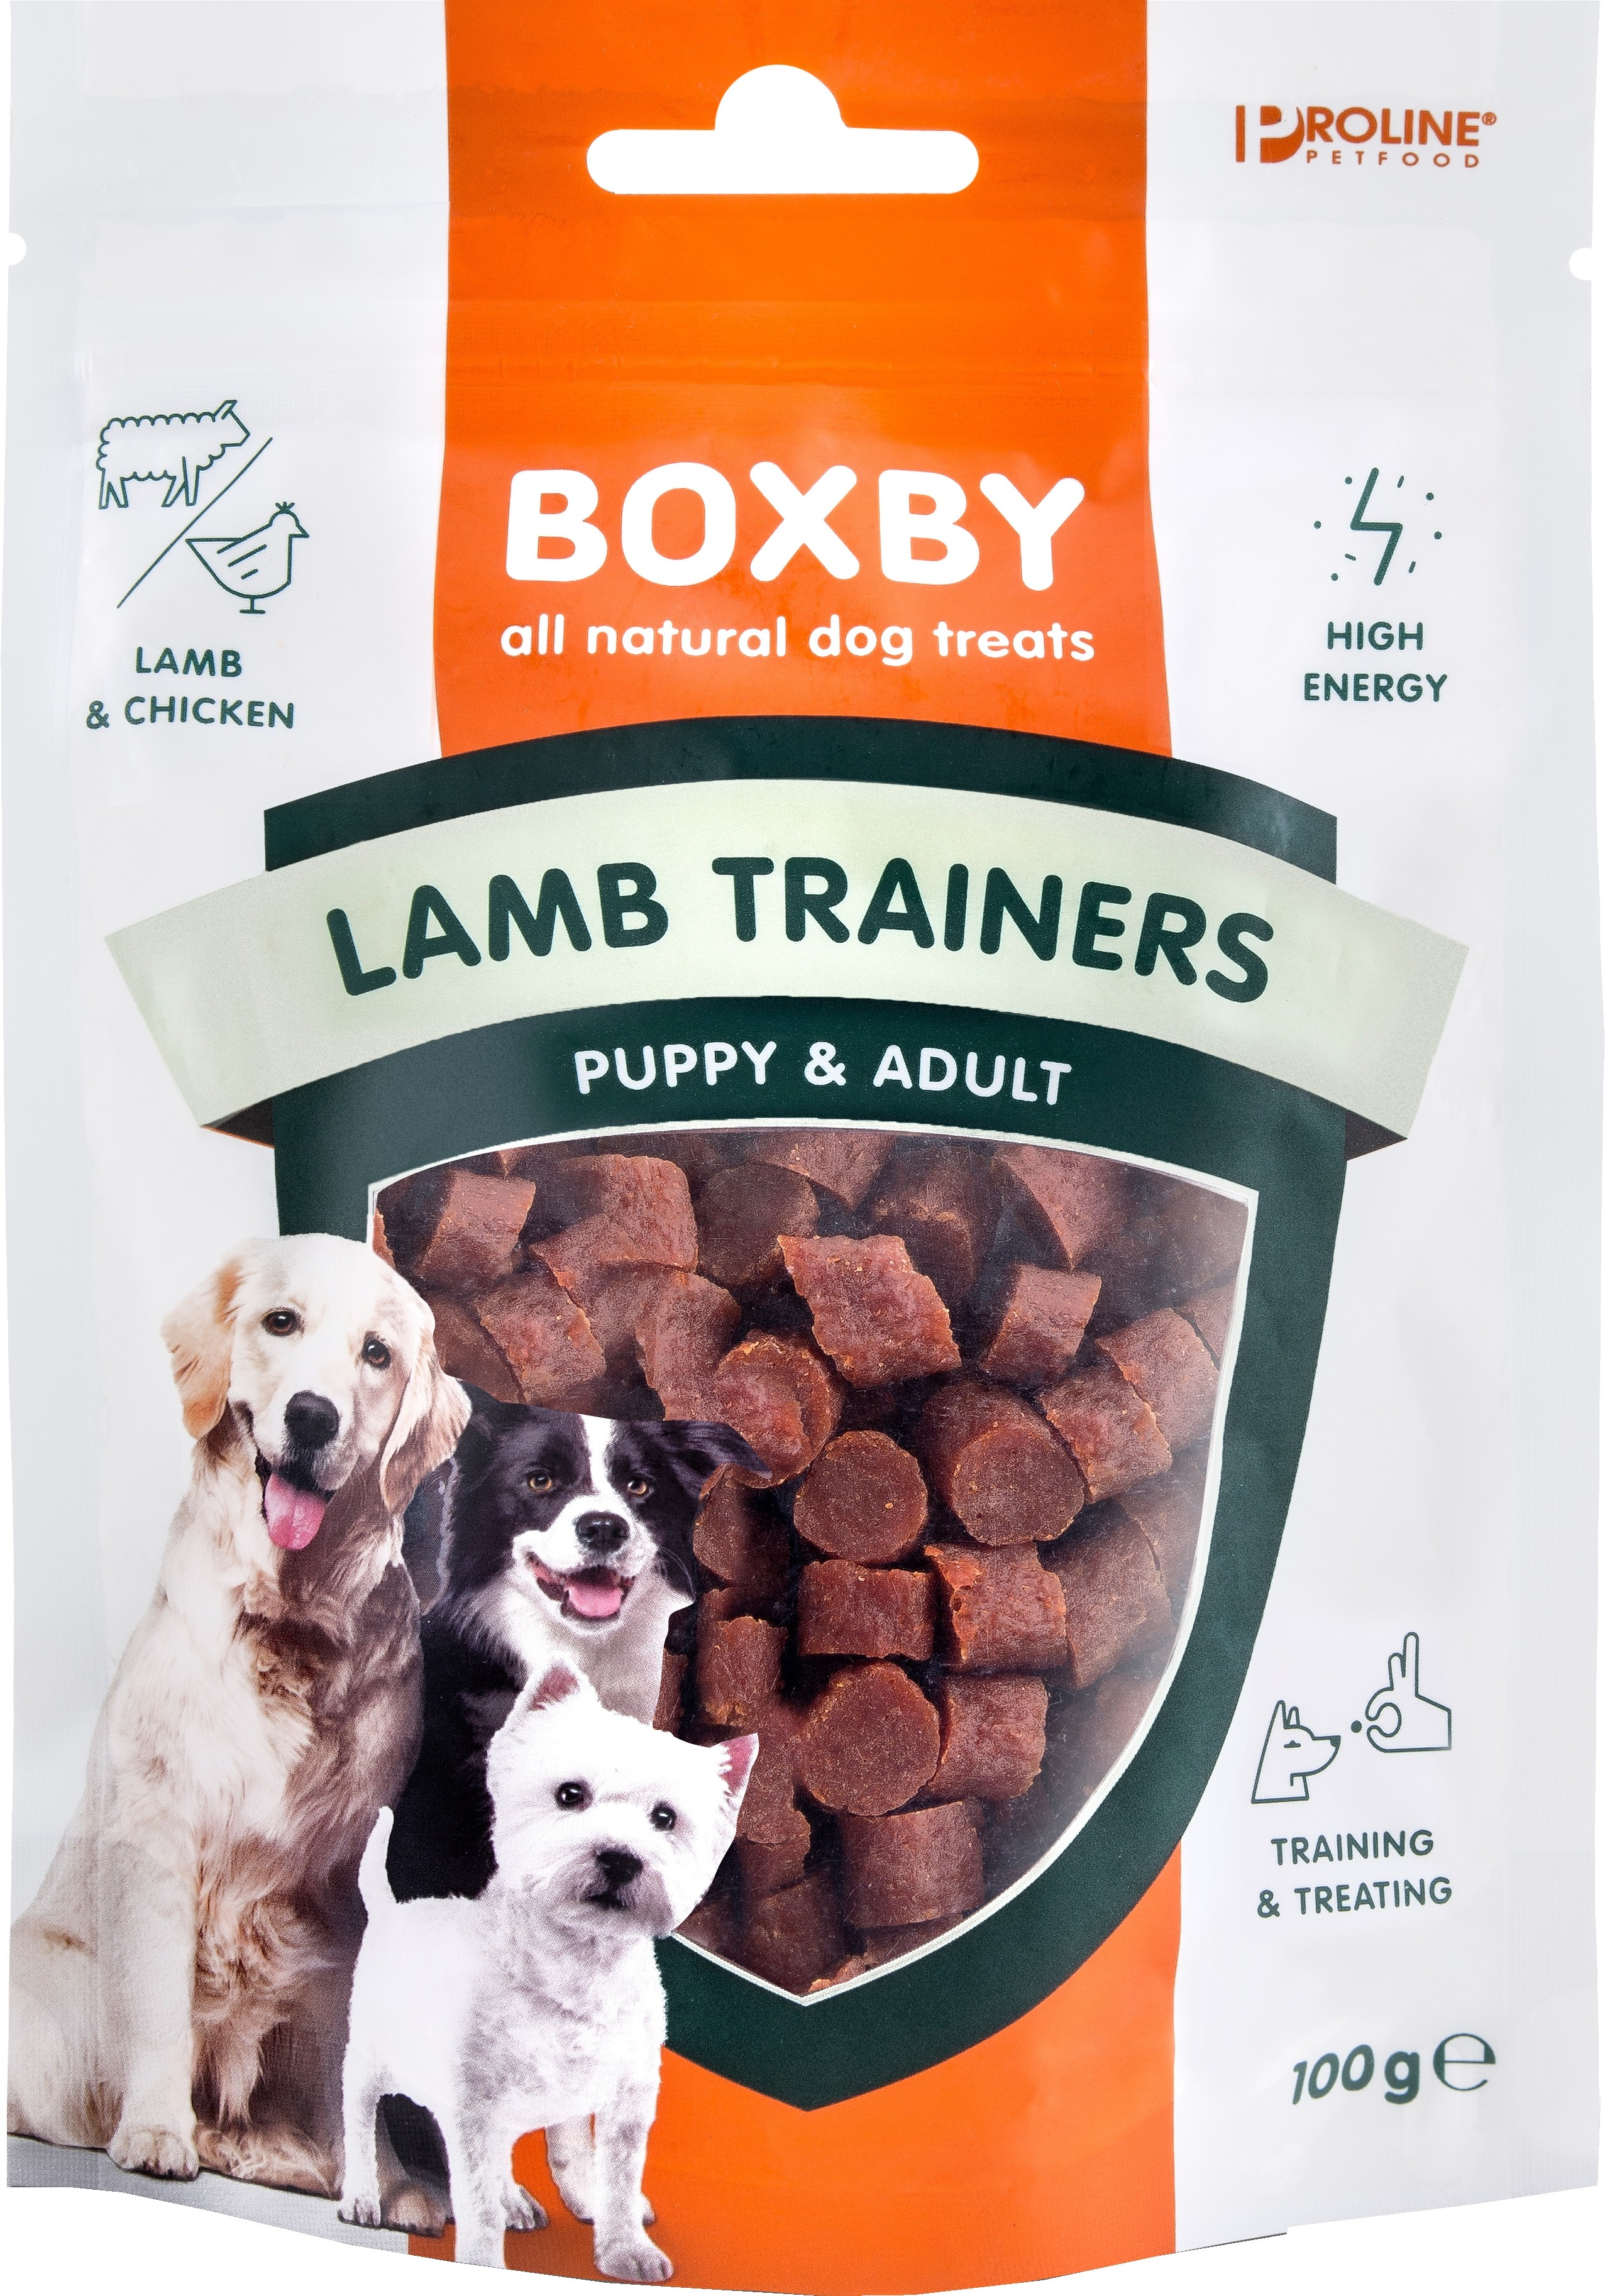 Boxby Lamb Trainers 100g.